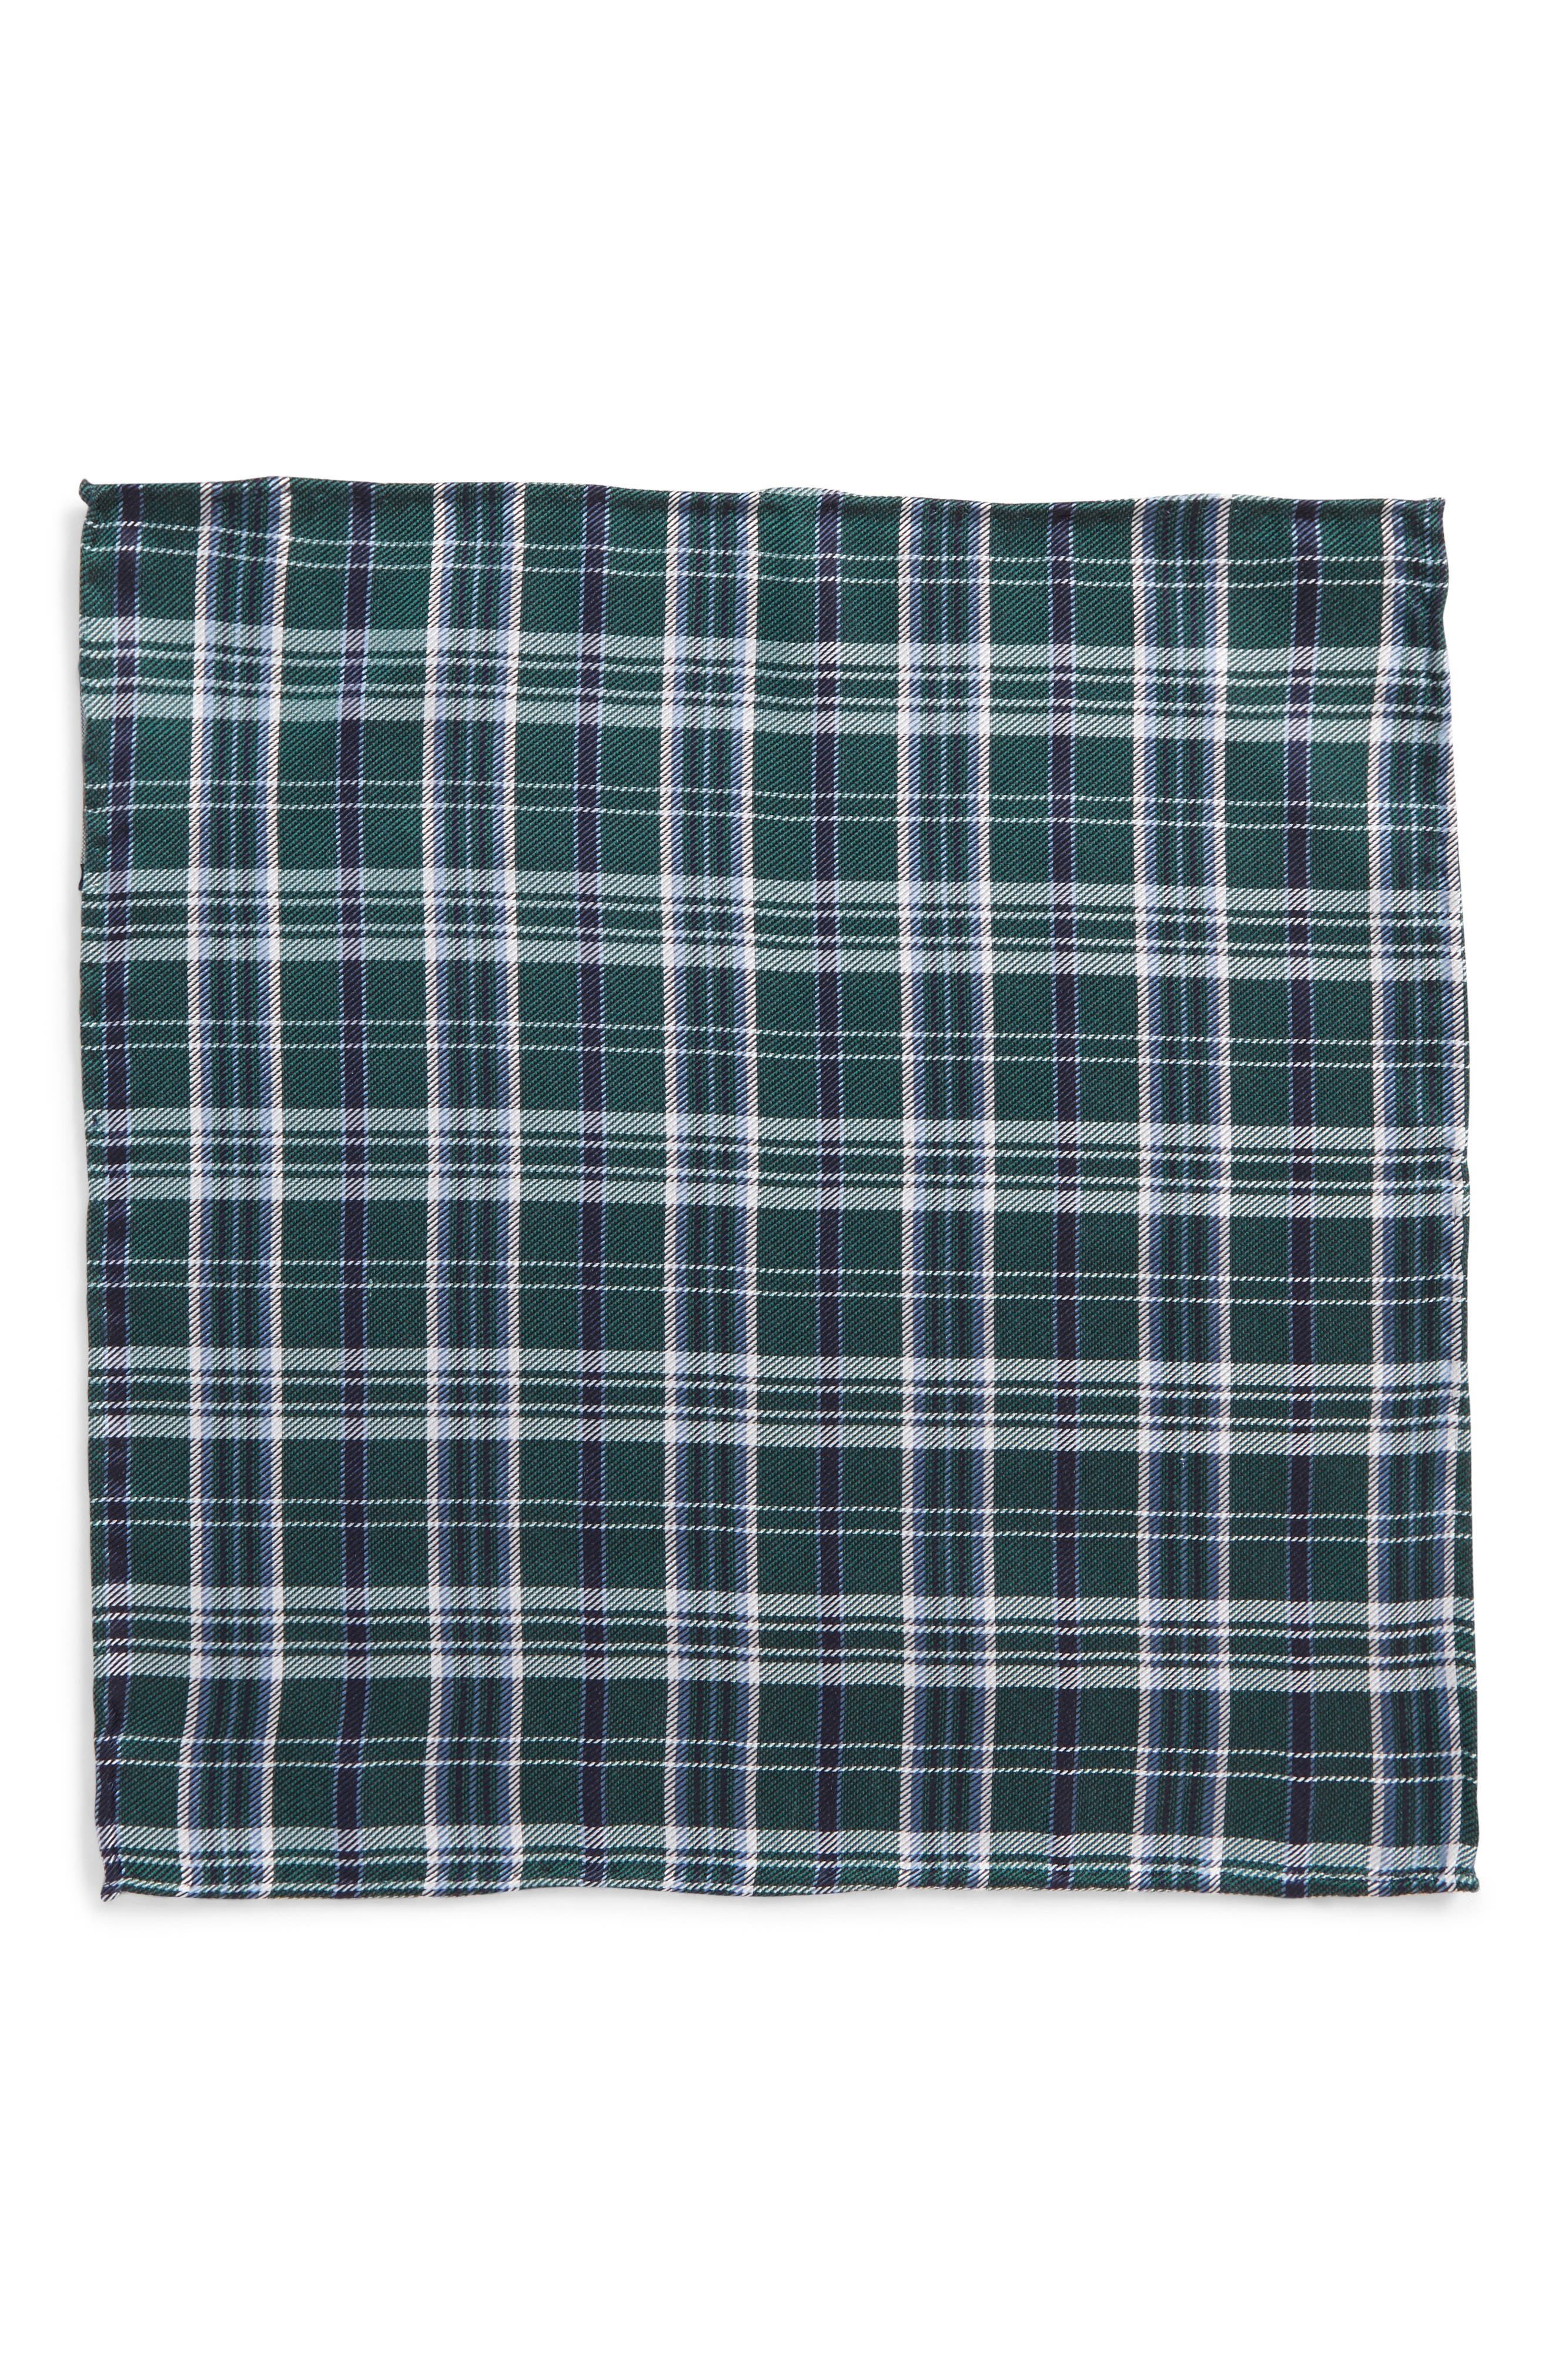 Andersen Plaid Wool Pocket Square,                             Alternate thumbnail 2, color,                             308